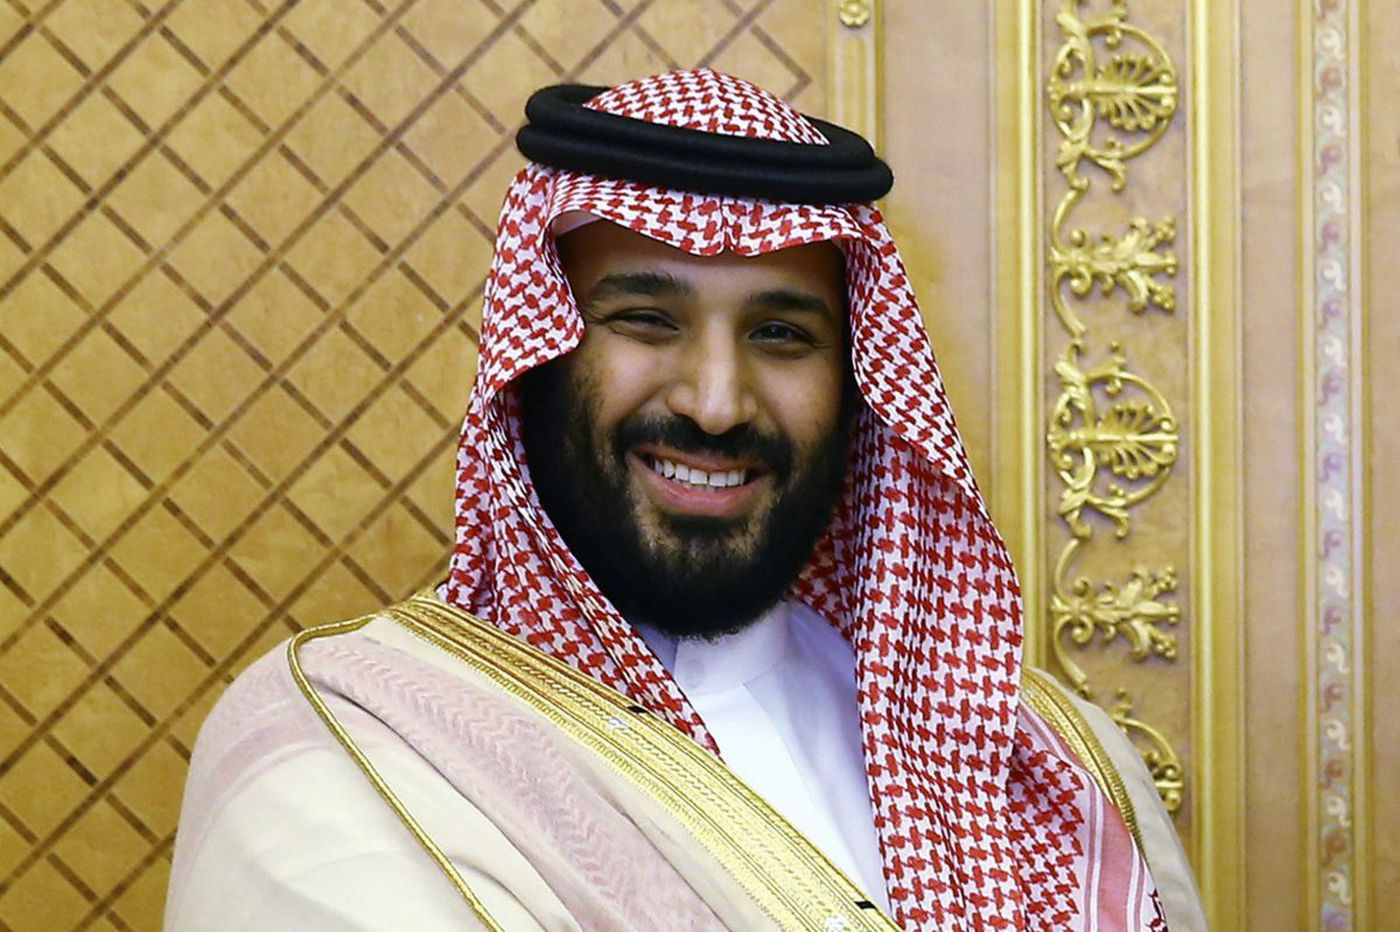 Trump hitches Mideast policy to a reckless prince | Trudy Rubin